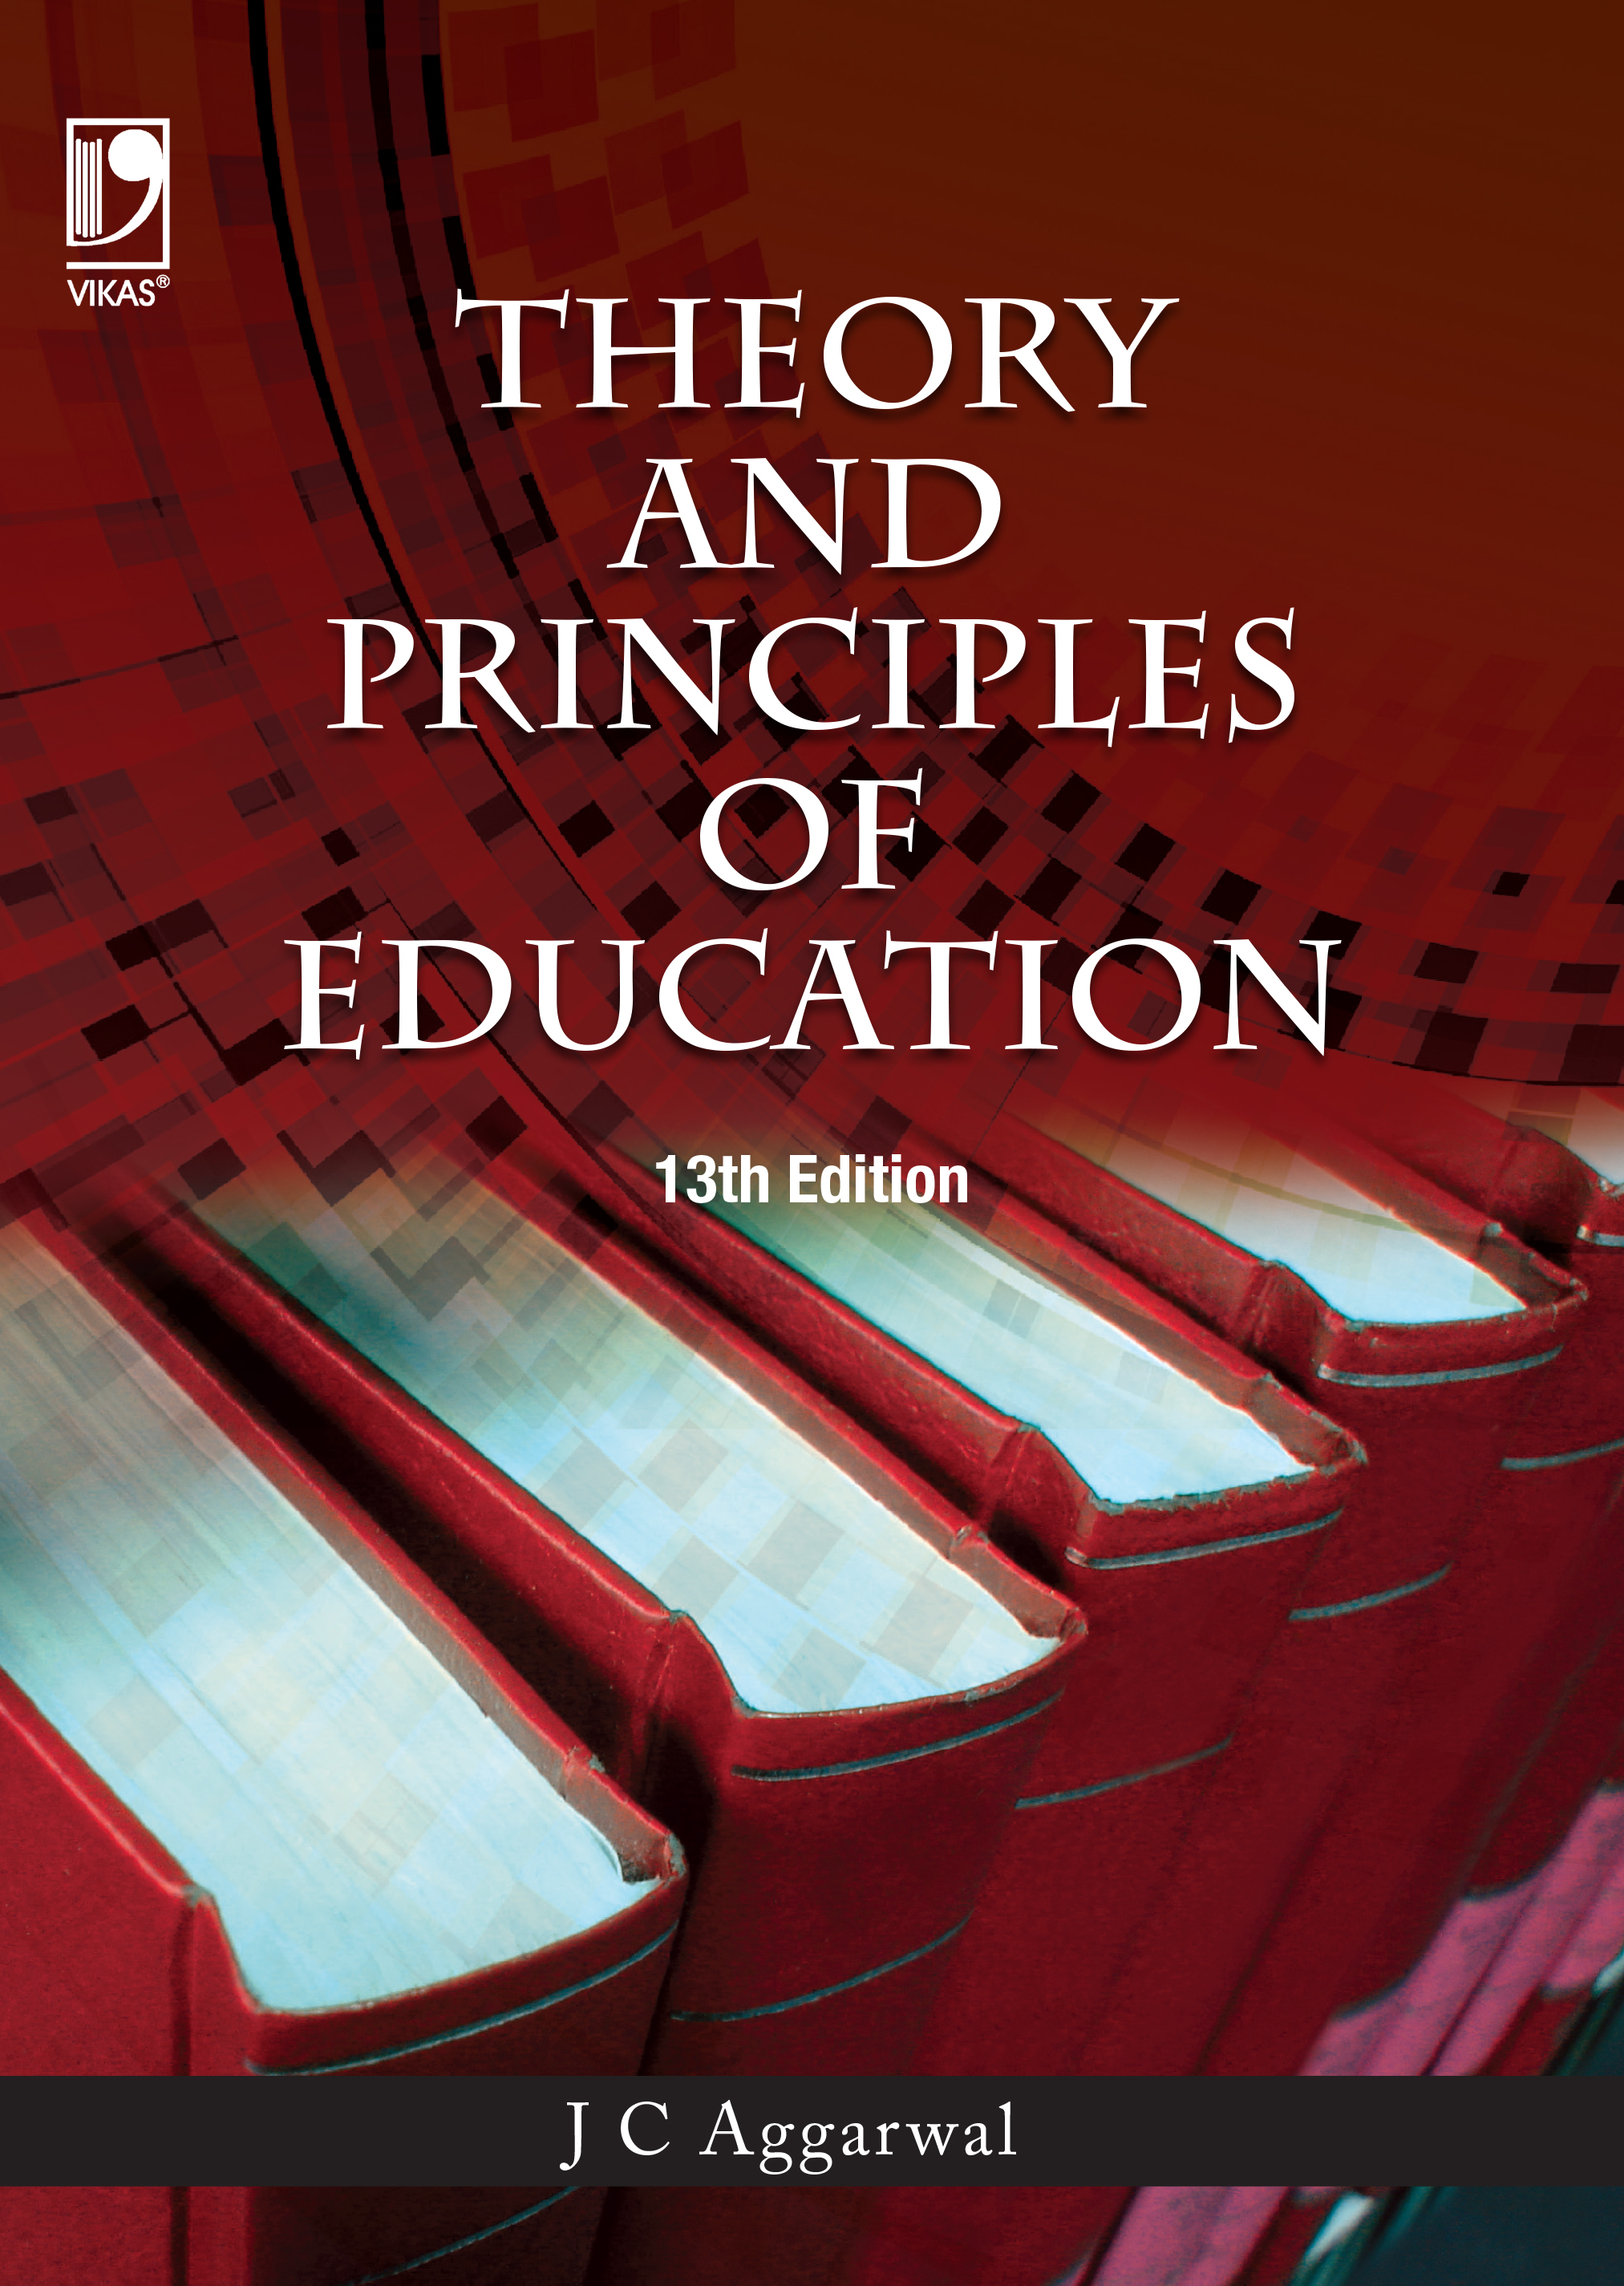 theory and principles of education  13e by j c  aggarwal